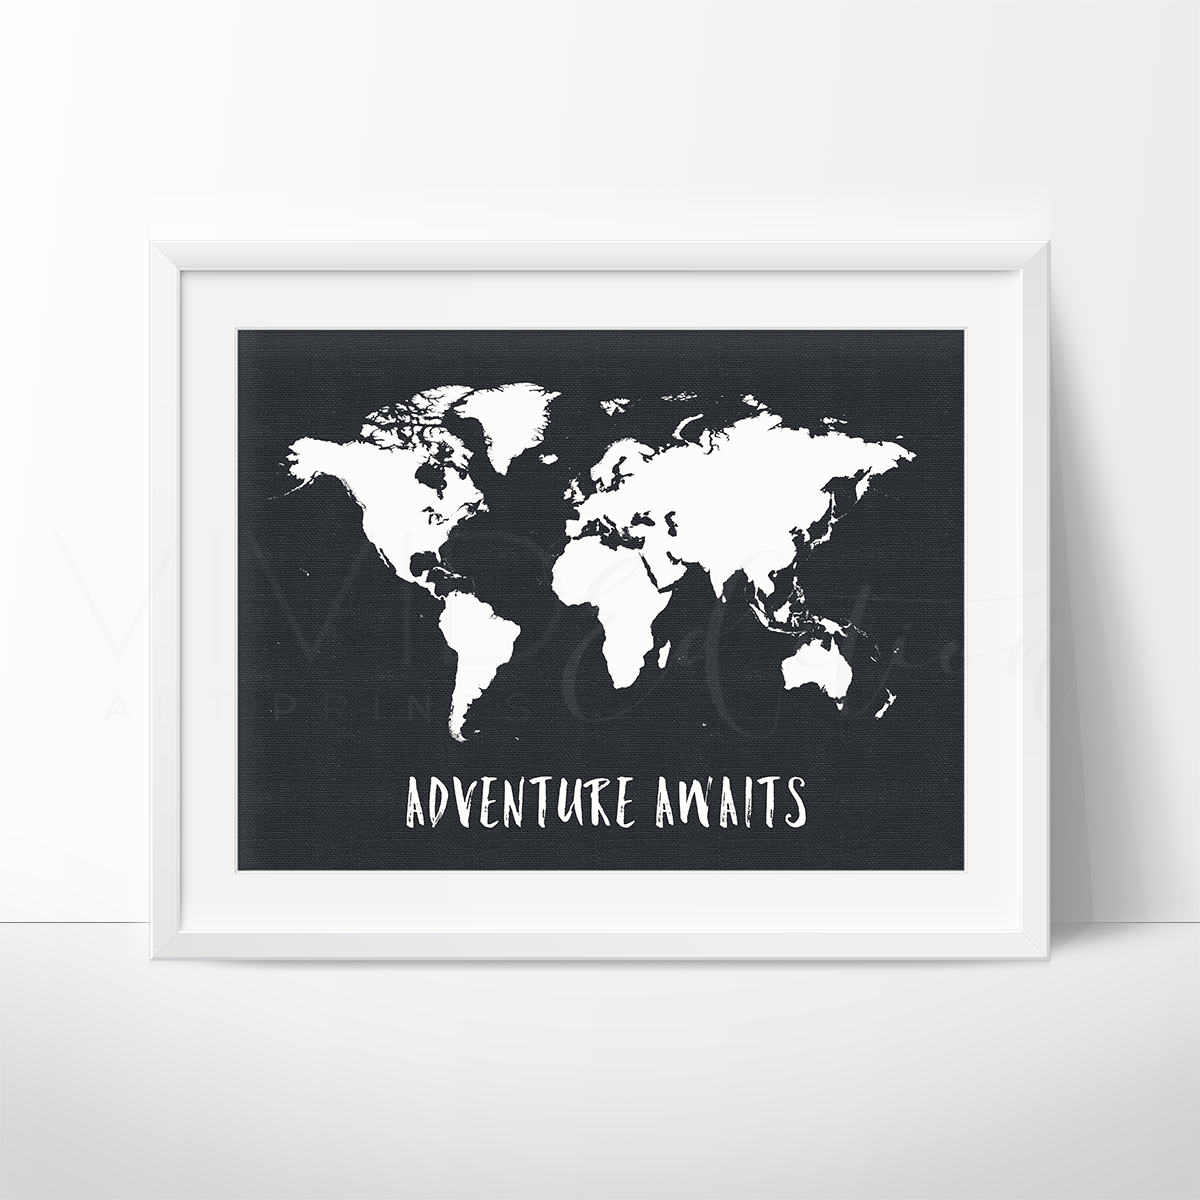 Adventure awaits world map nursery art wall decor print vivideditions adventure awaits world map black white art print vivideditions gumiabroncs